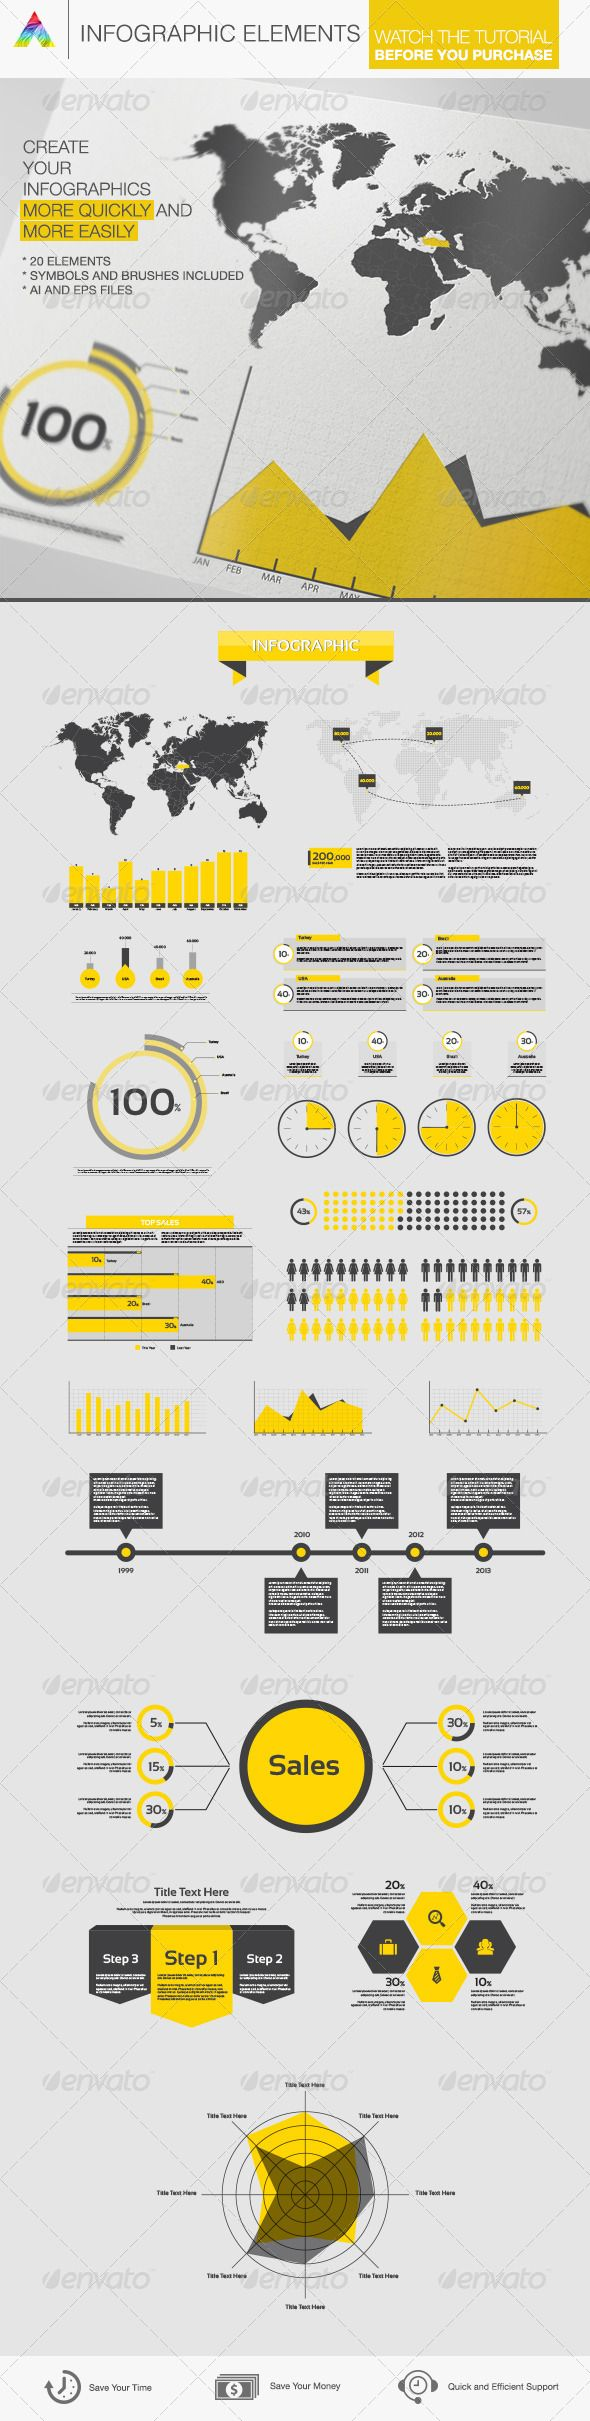 Infographic Elements Features 2 Illustrator CS files (2 .Ai CC/CS, 1 .EPS) 100% Vector Shapes 100% Editable: colors, texts, shapes etc. Brushes and symbols are included. Fonts Sansation. http://startupstacks.com/infographics/infographic-elements-14.html - free download